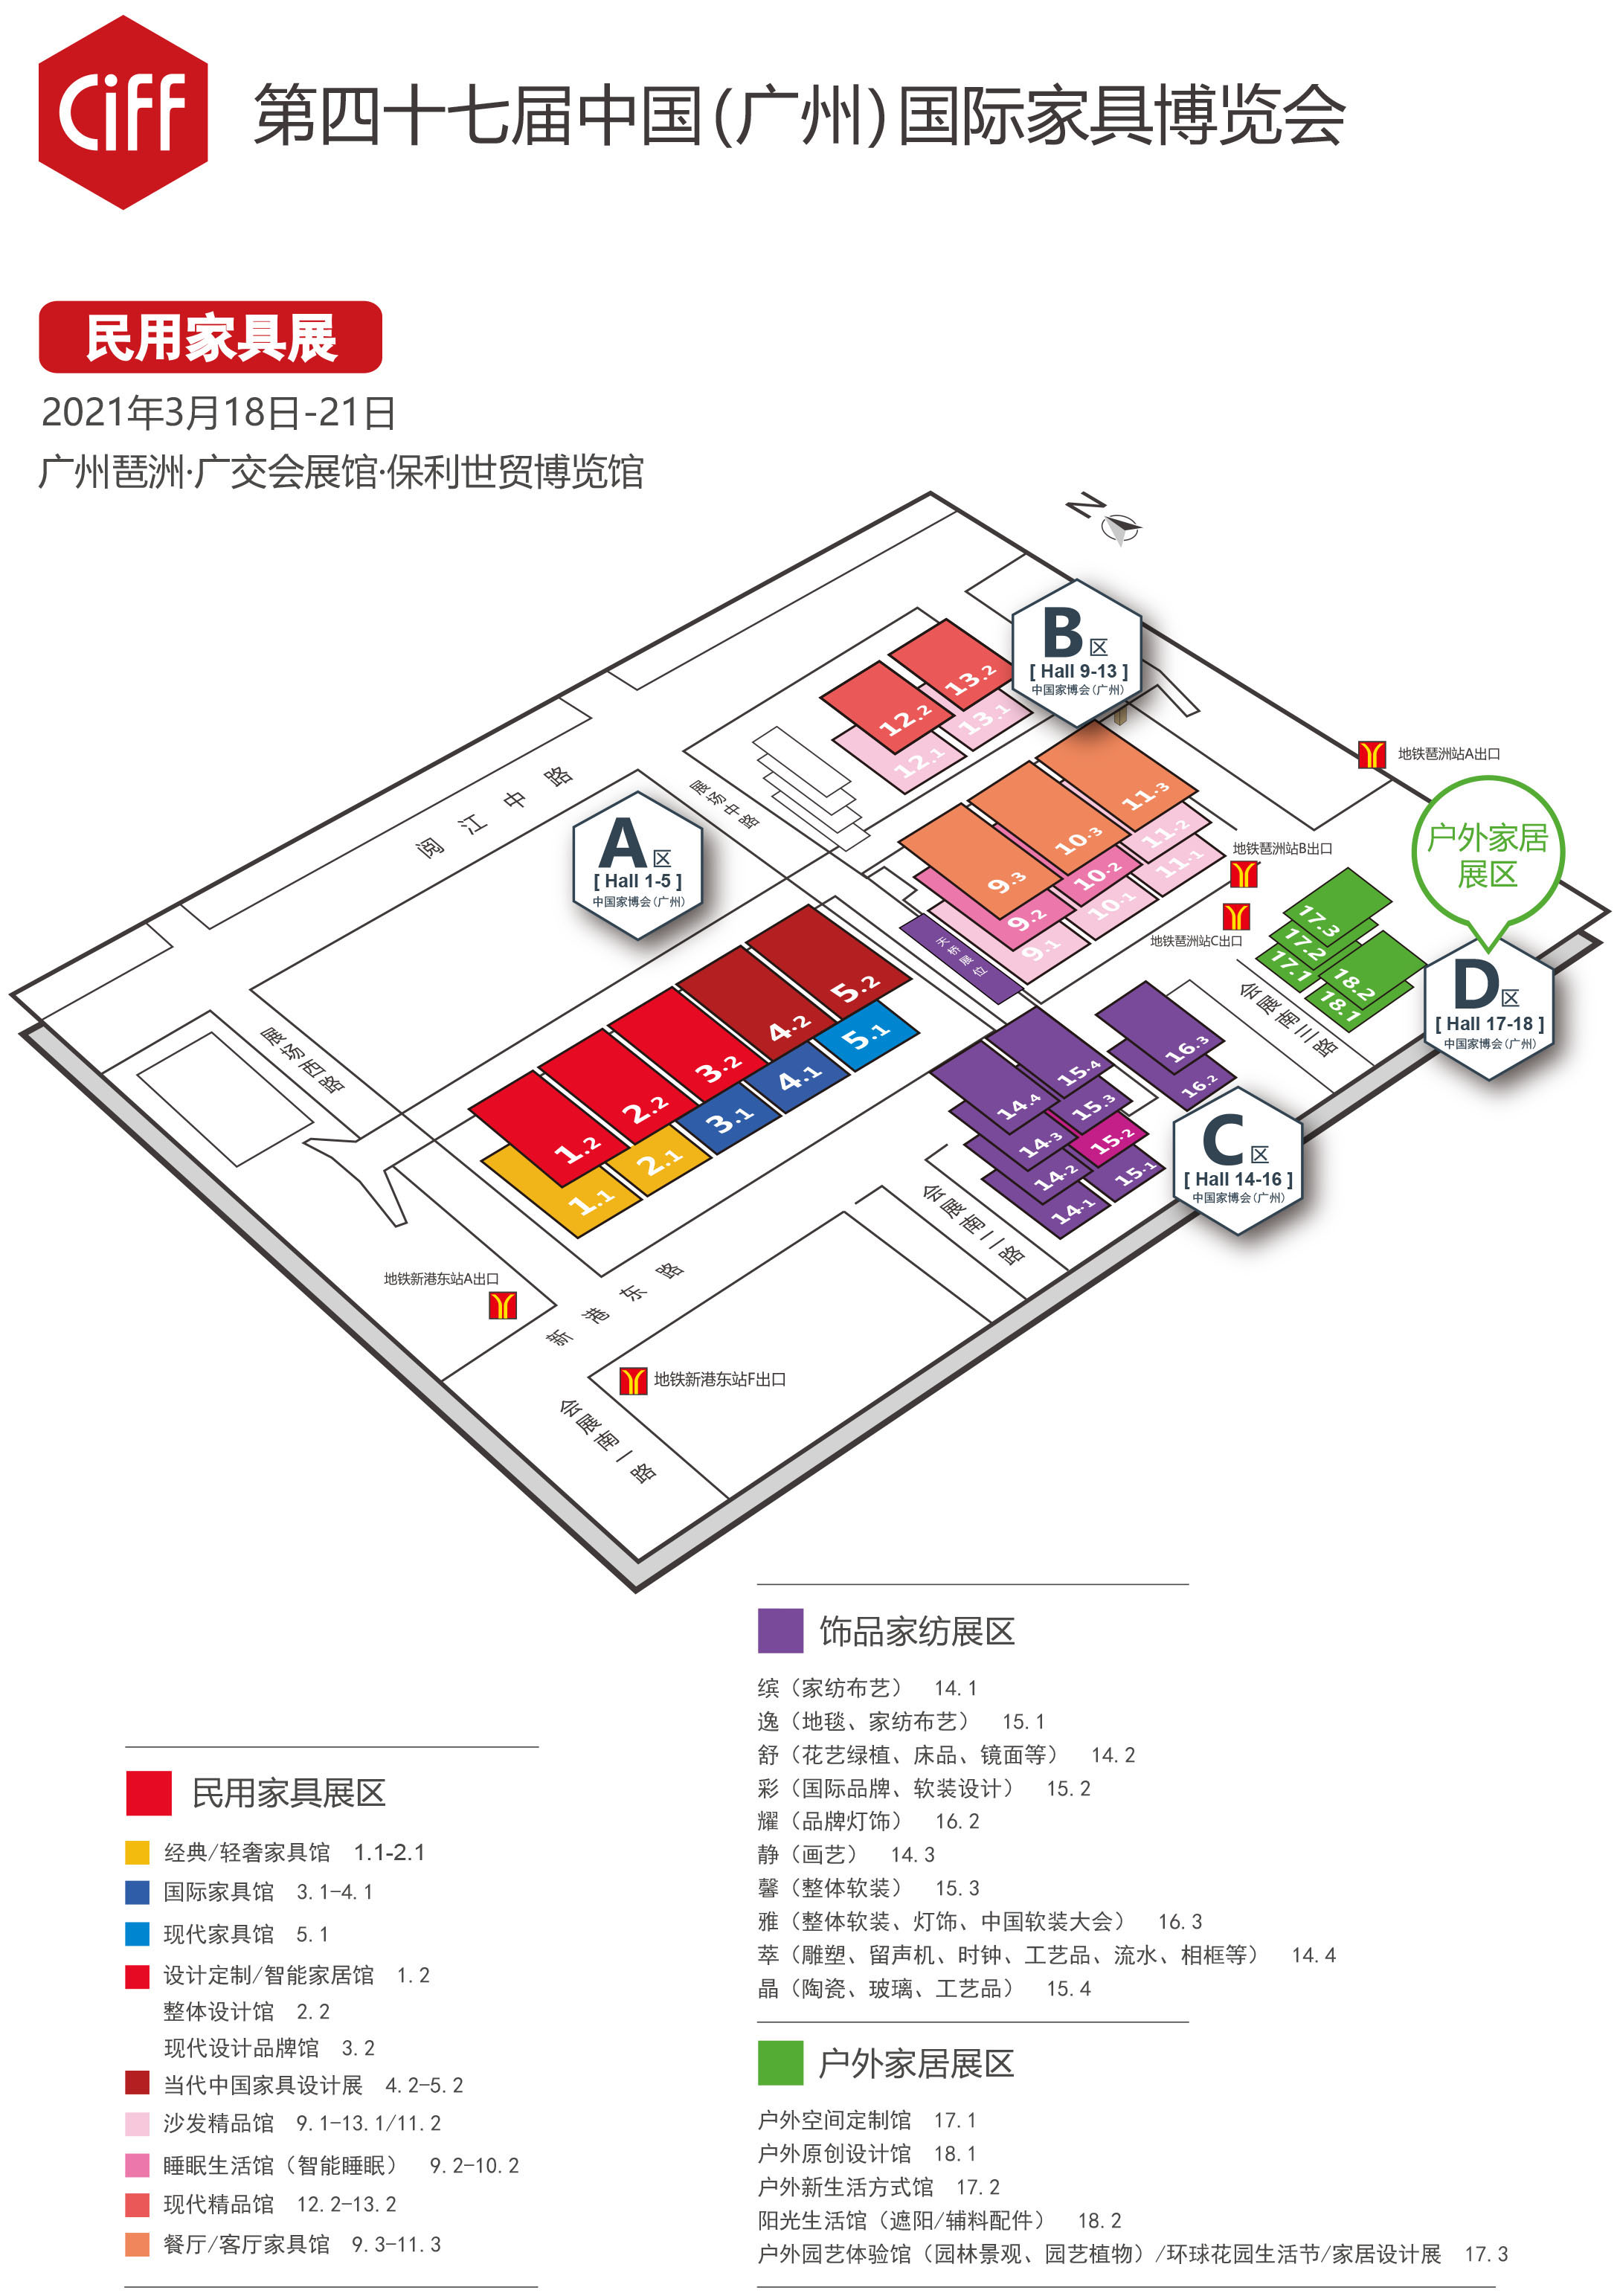 hall plan of the 45th China International Furniture Fair